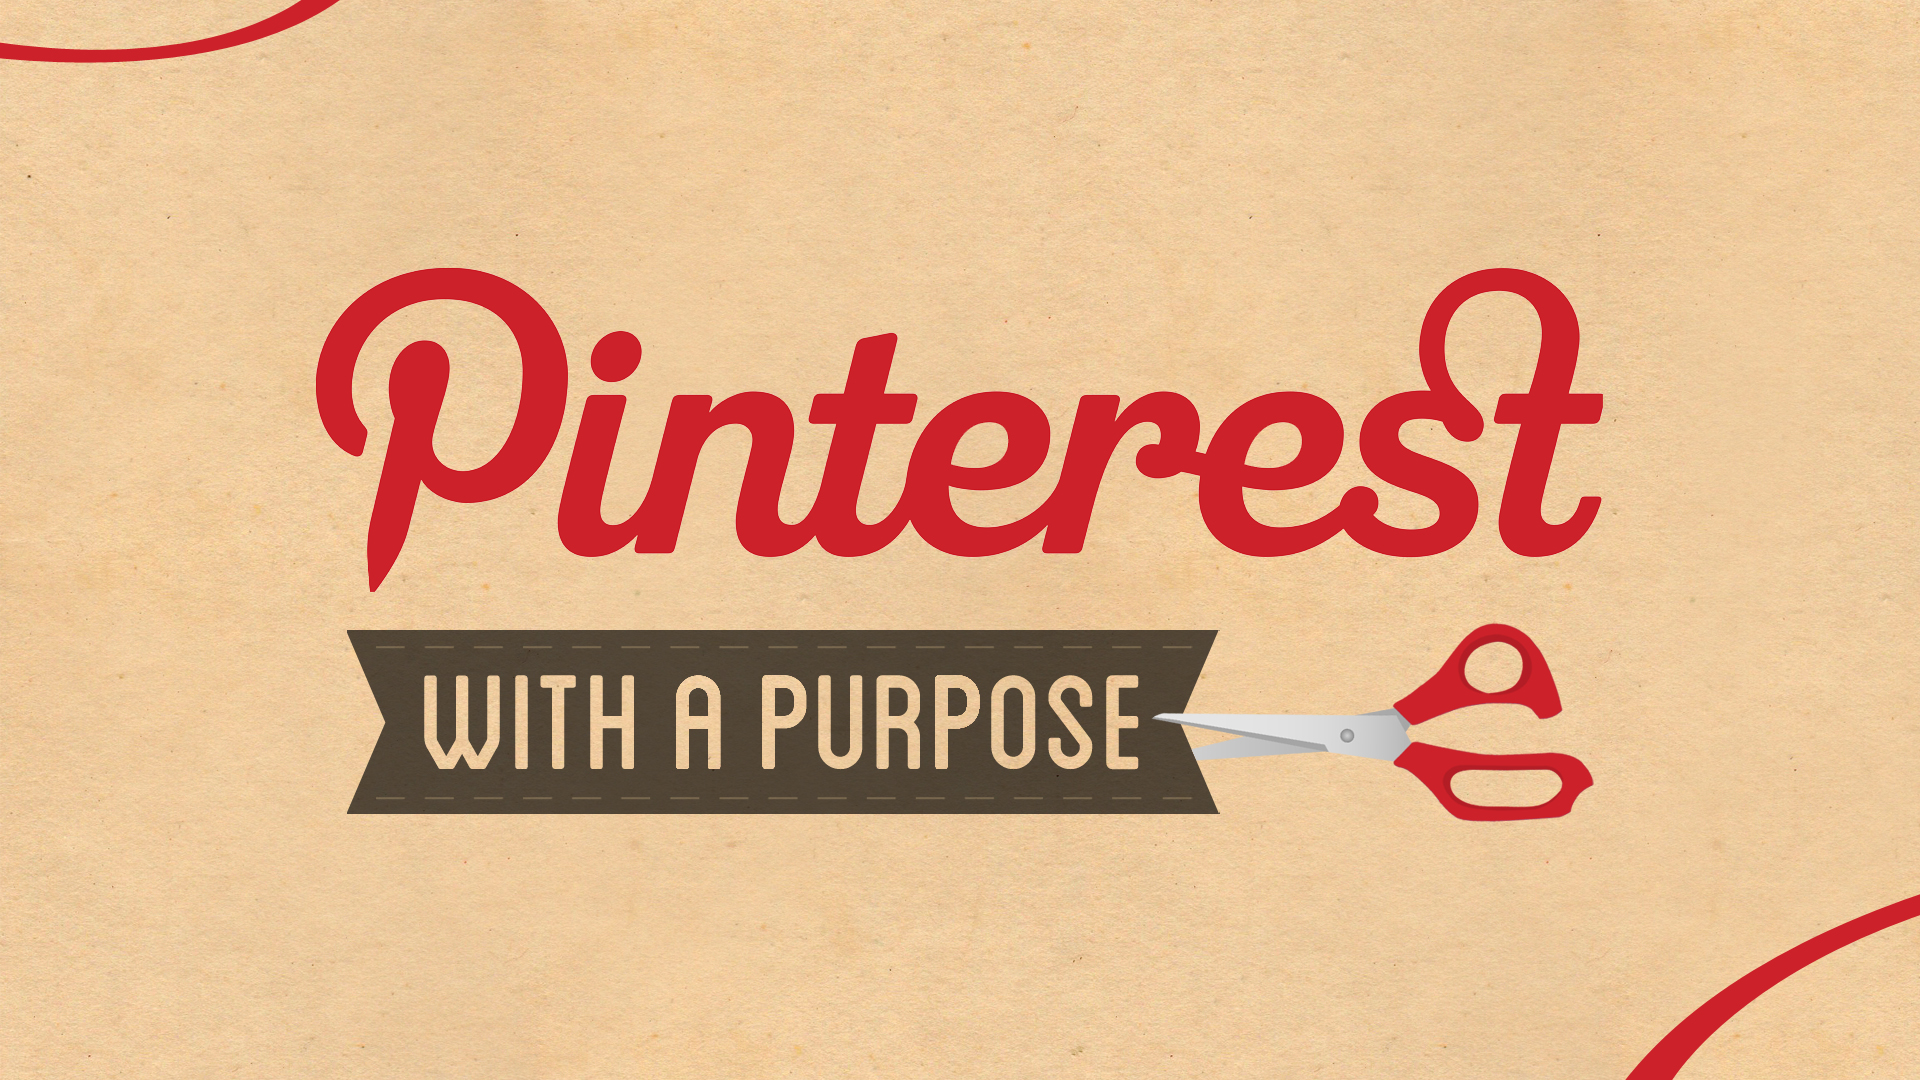 Pinterest With A Purpose